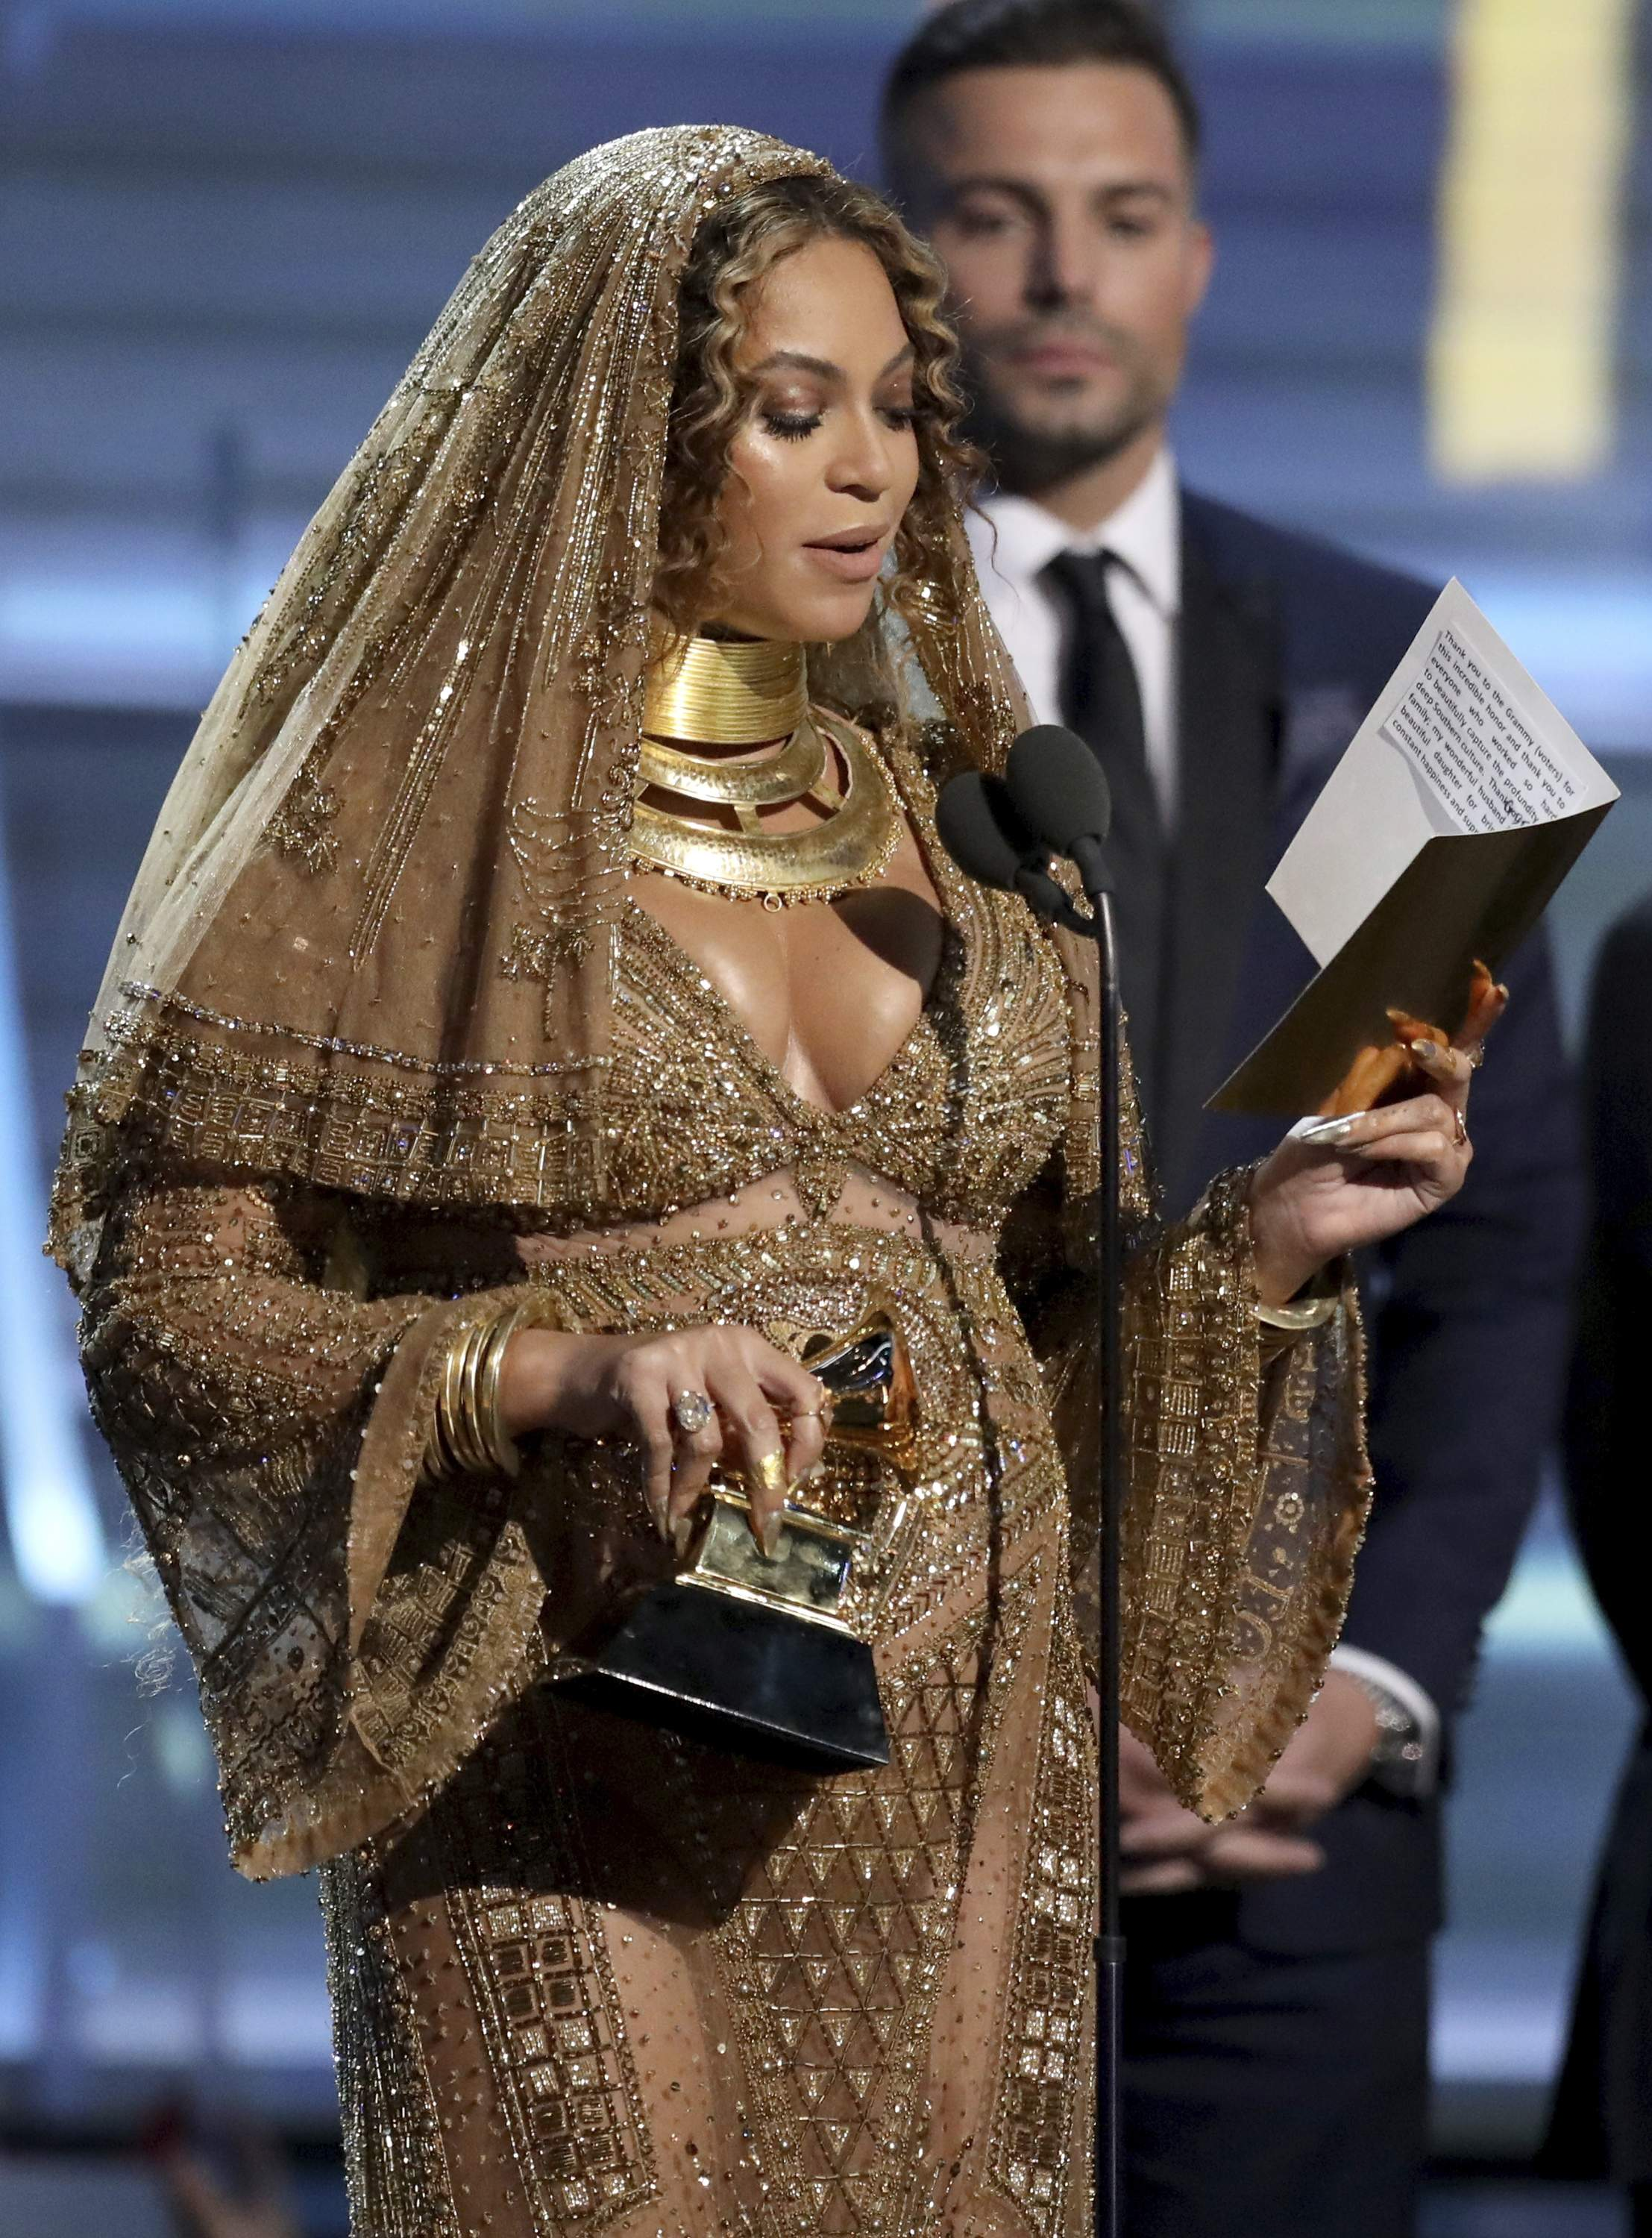 Beyonce accepts the award for best urban contemporary album for 'Lemonade' at the 59th annual Grammy Awards on Sunday, Feb. 12, 2017, in Los Angeles. THE ASSOCIATED PRESS